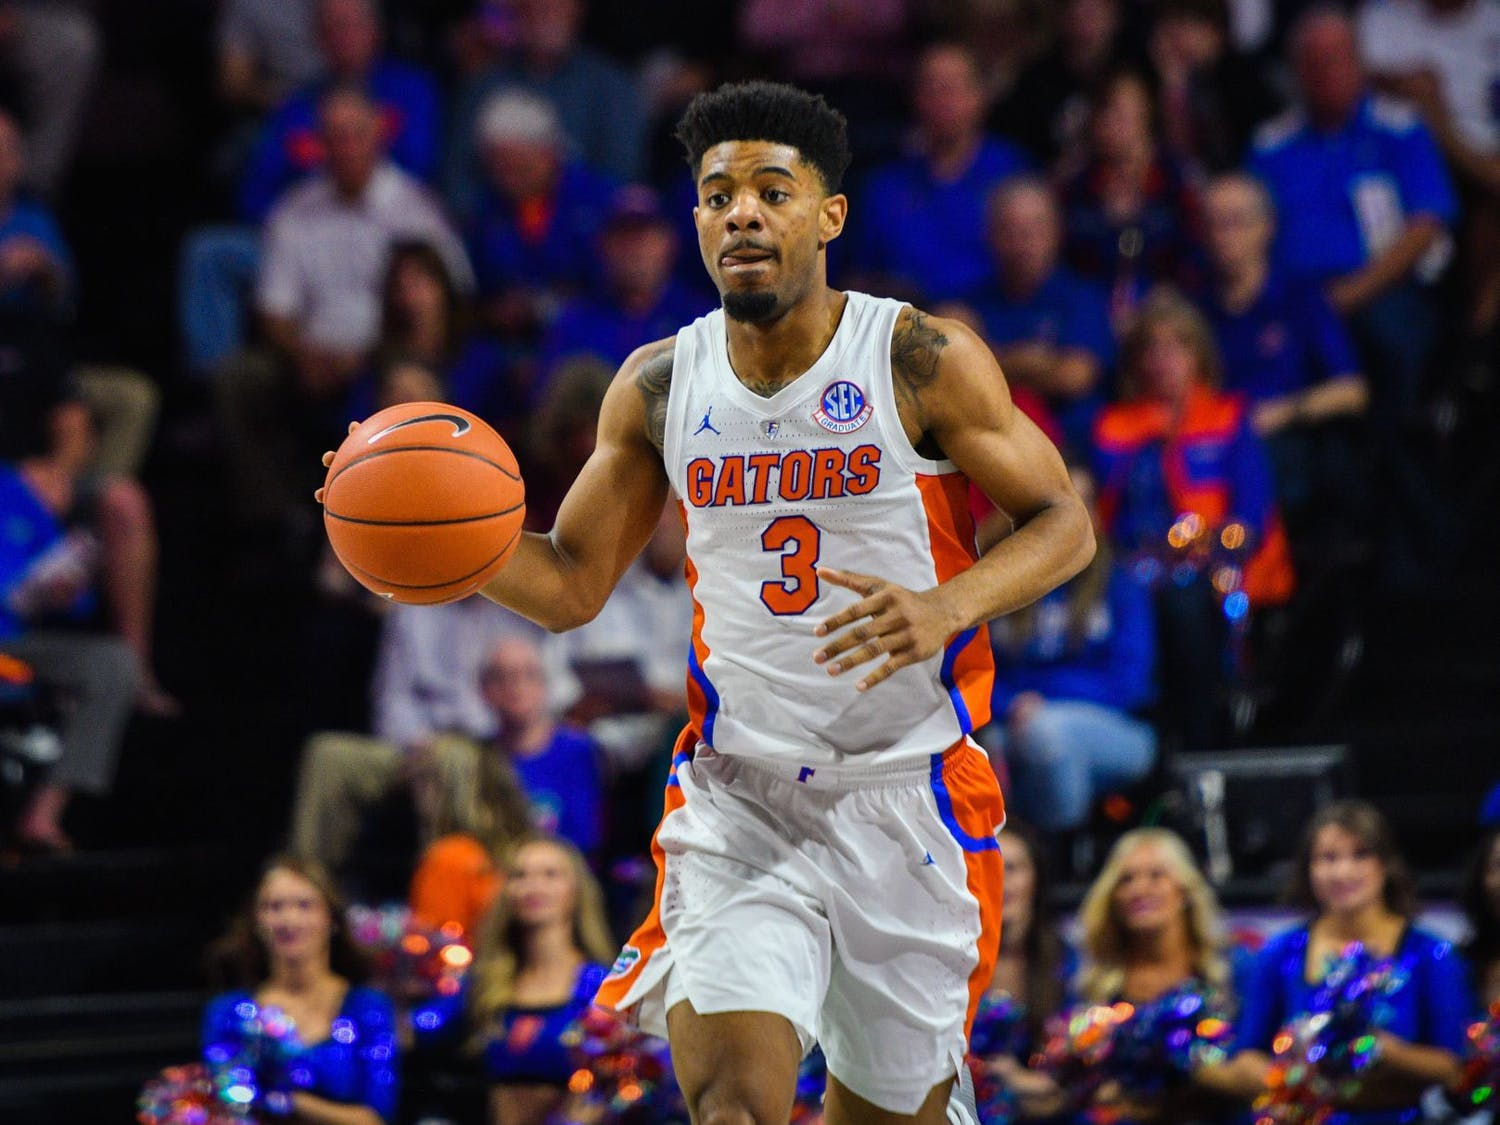 Senior guard Jalen Hudson scored 16 points in the Gators' 65-62 loss to Auburn in the SEC Tournament semifinals.